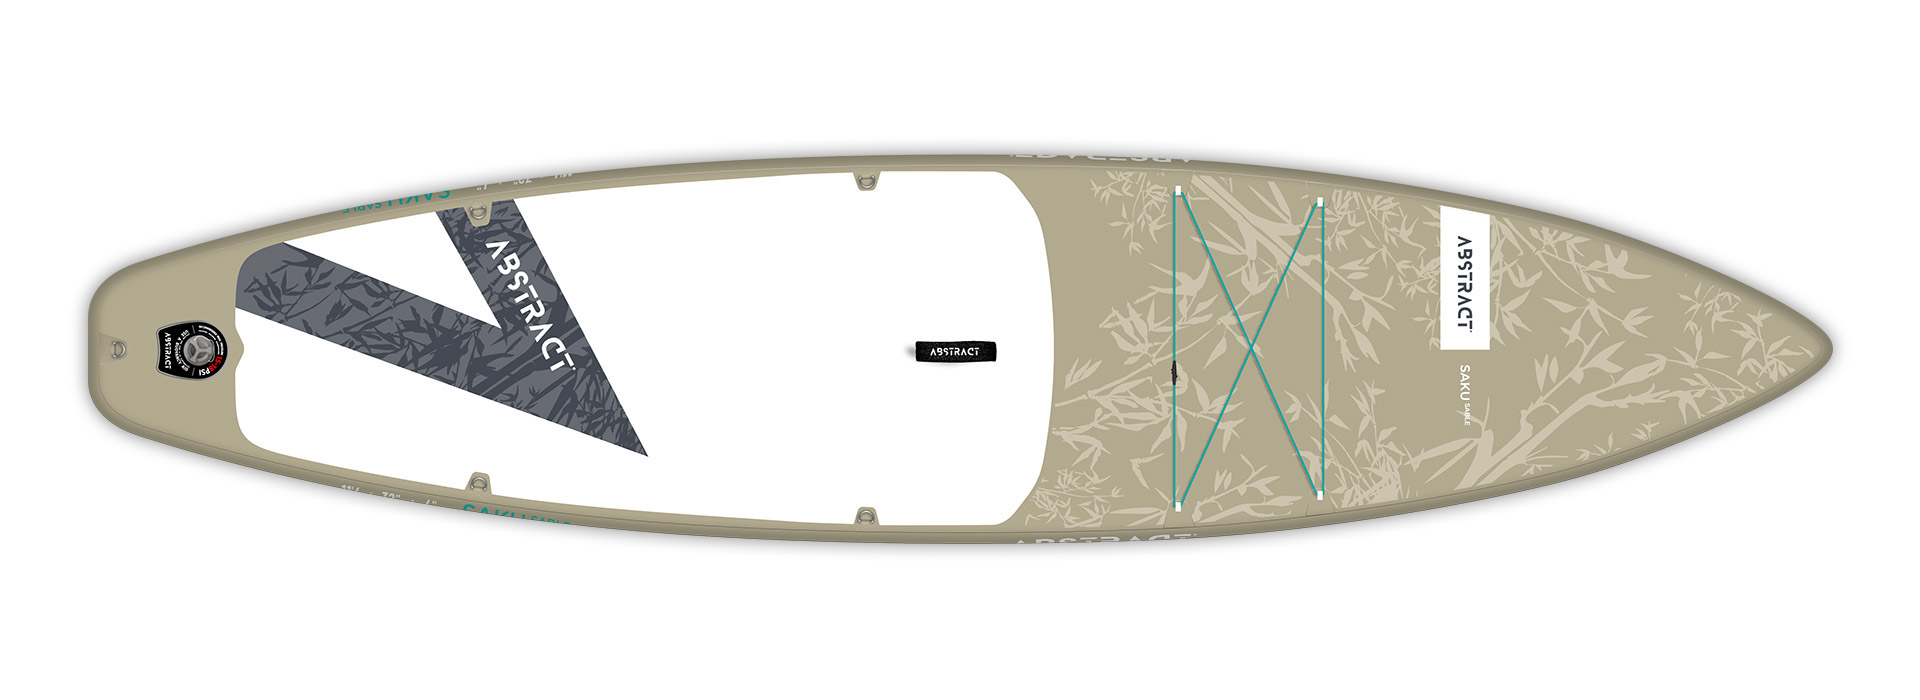 Planche de paddle Board gonflable Saku Sable (Geige) Abstract 2021